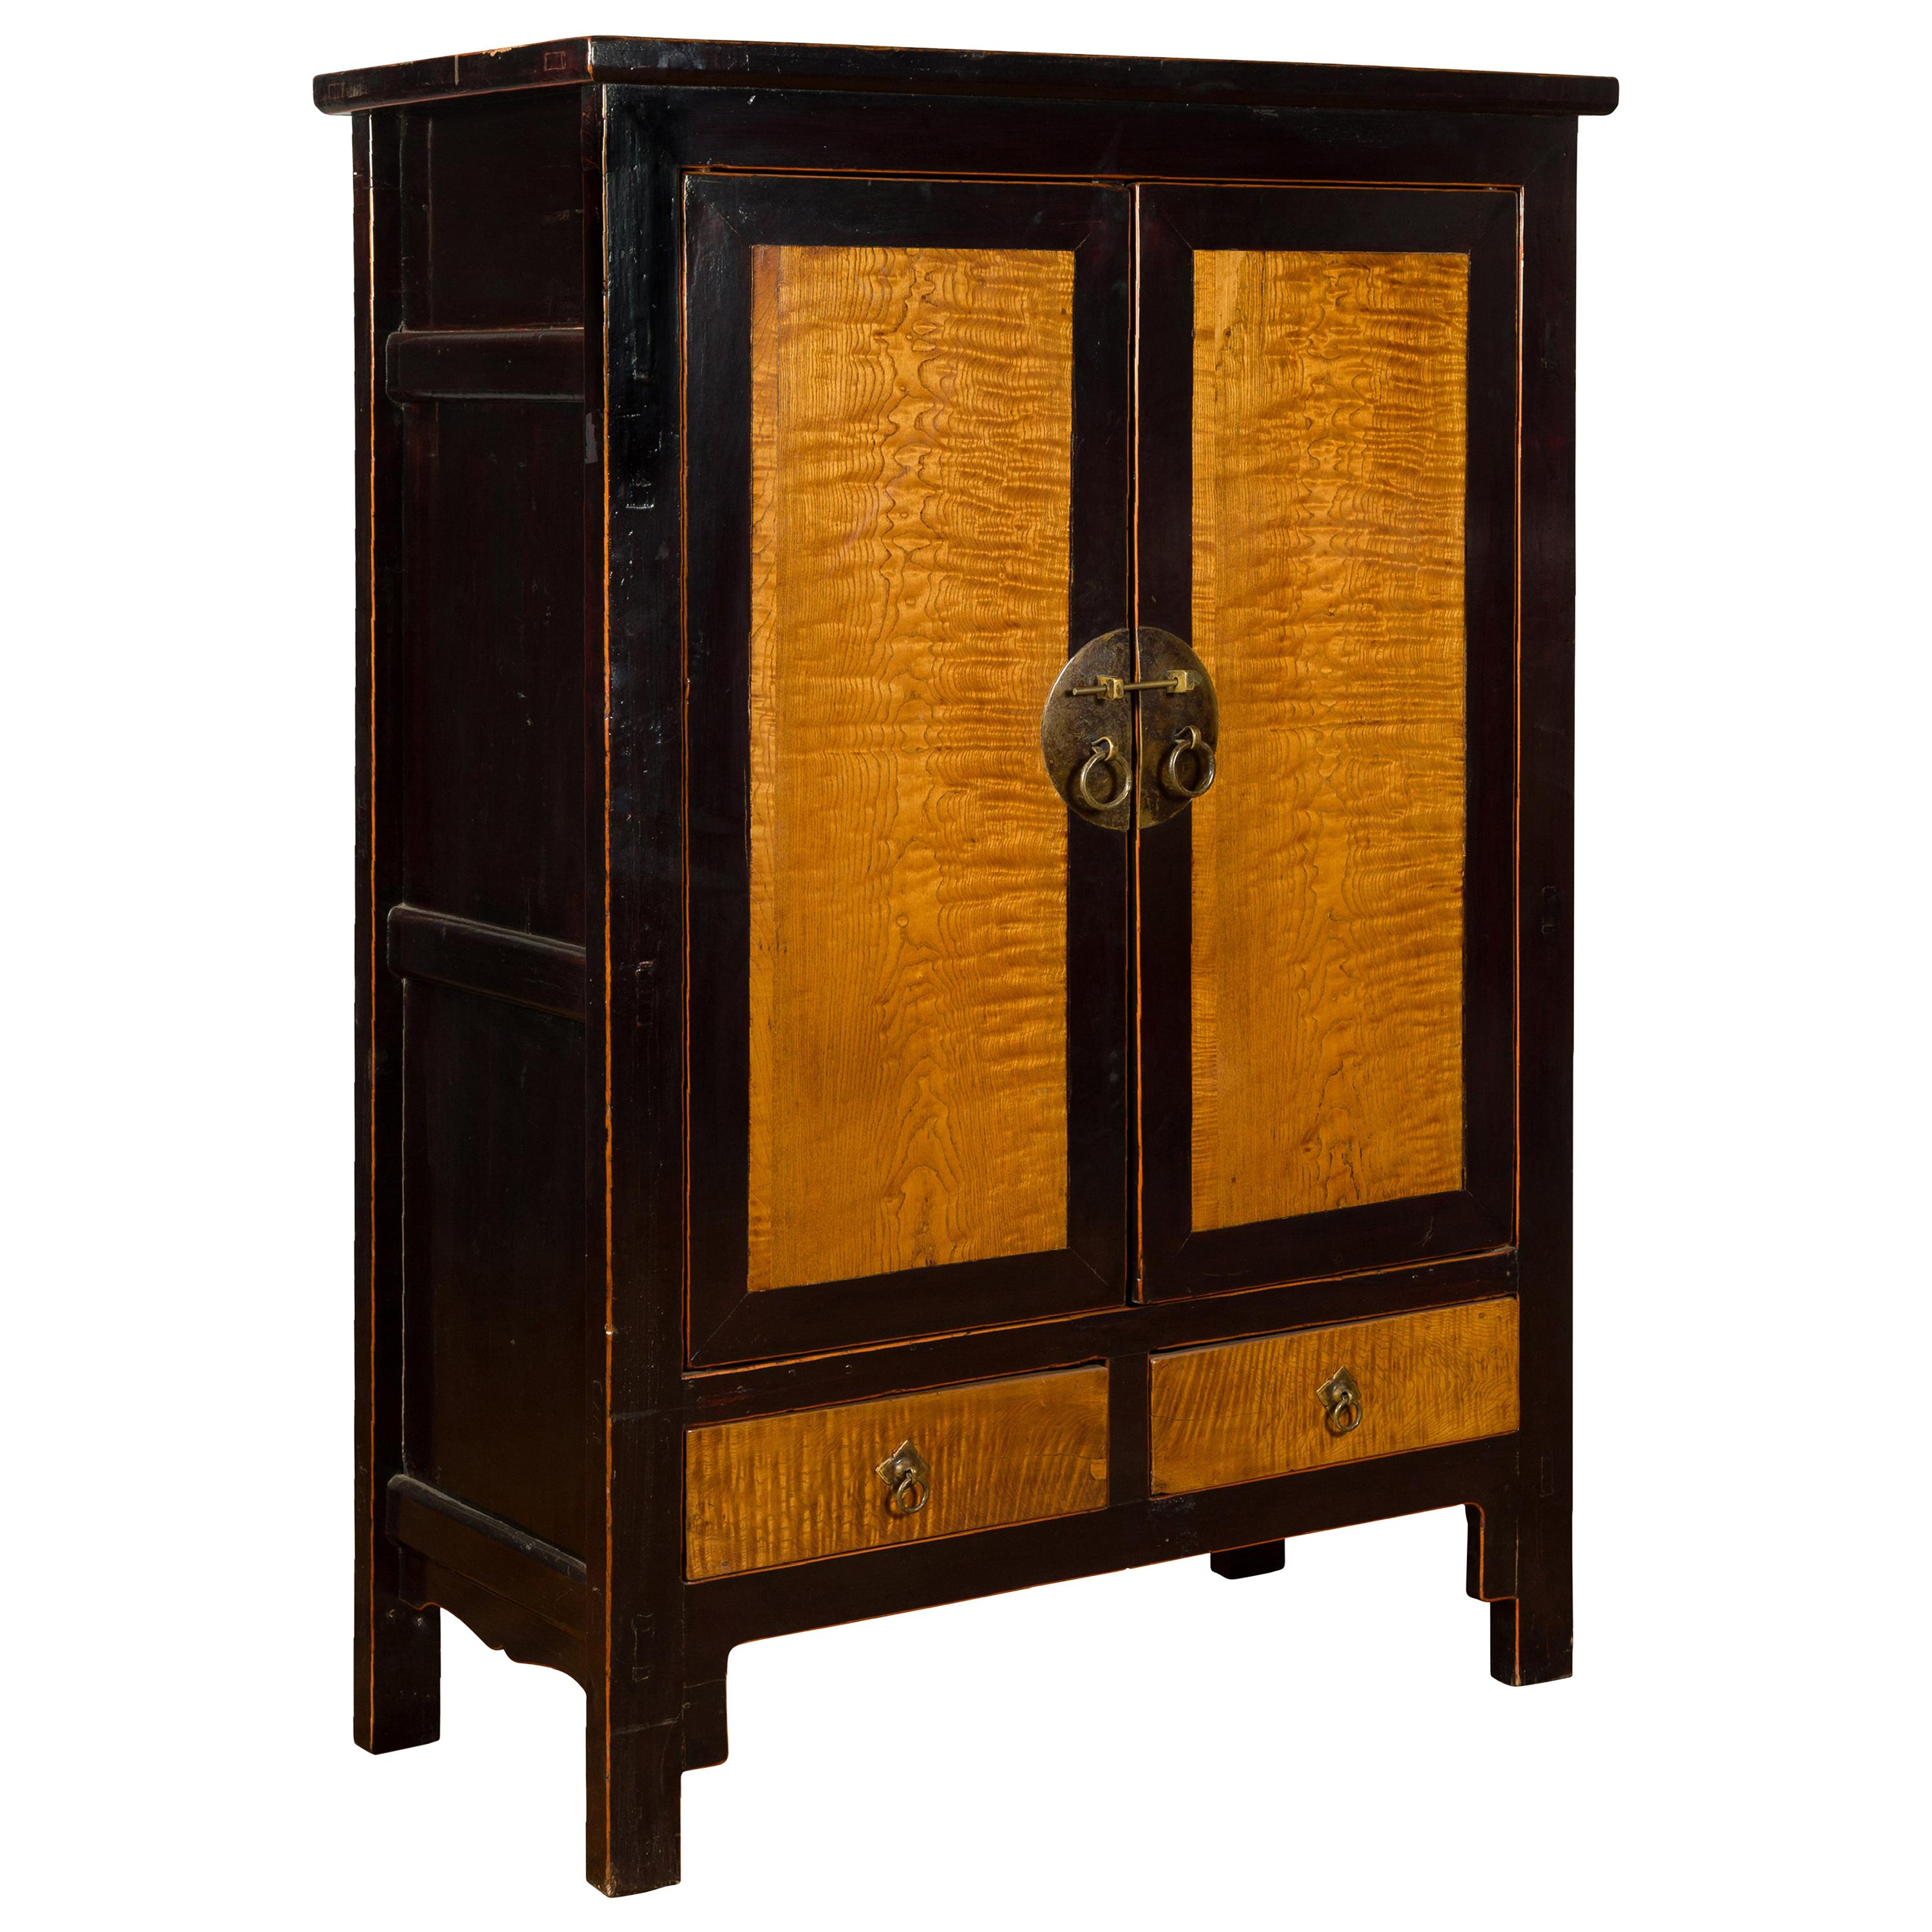 Chinese 19th Century Two-Door Black Cabinet with Inset Burl Panels and Drawers